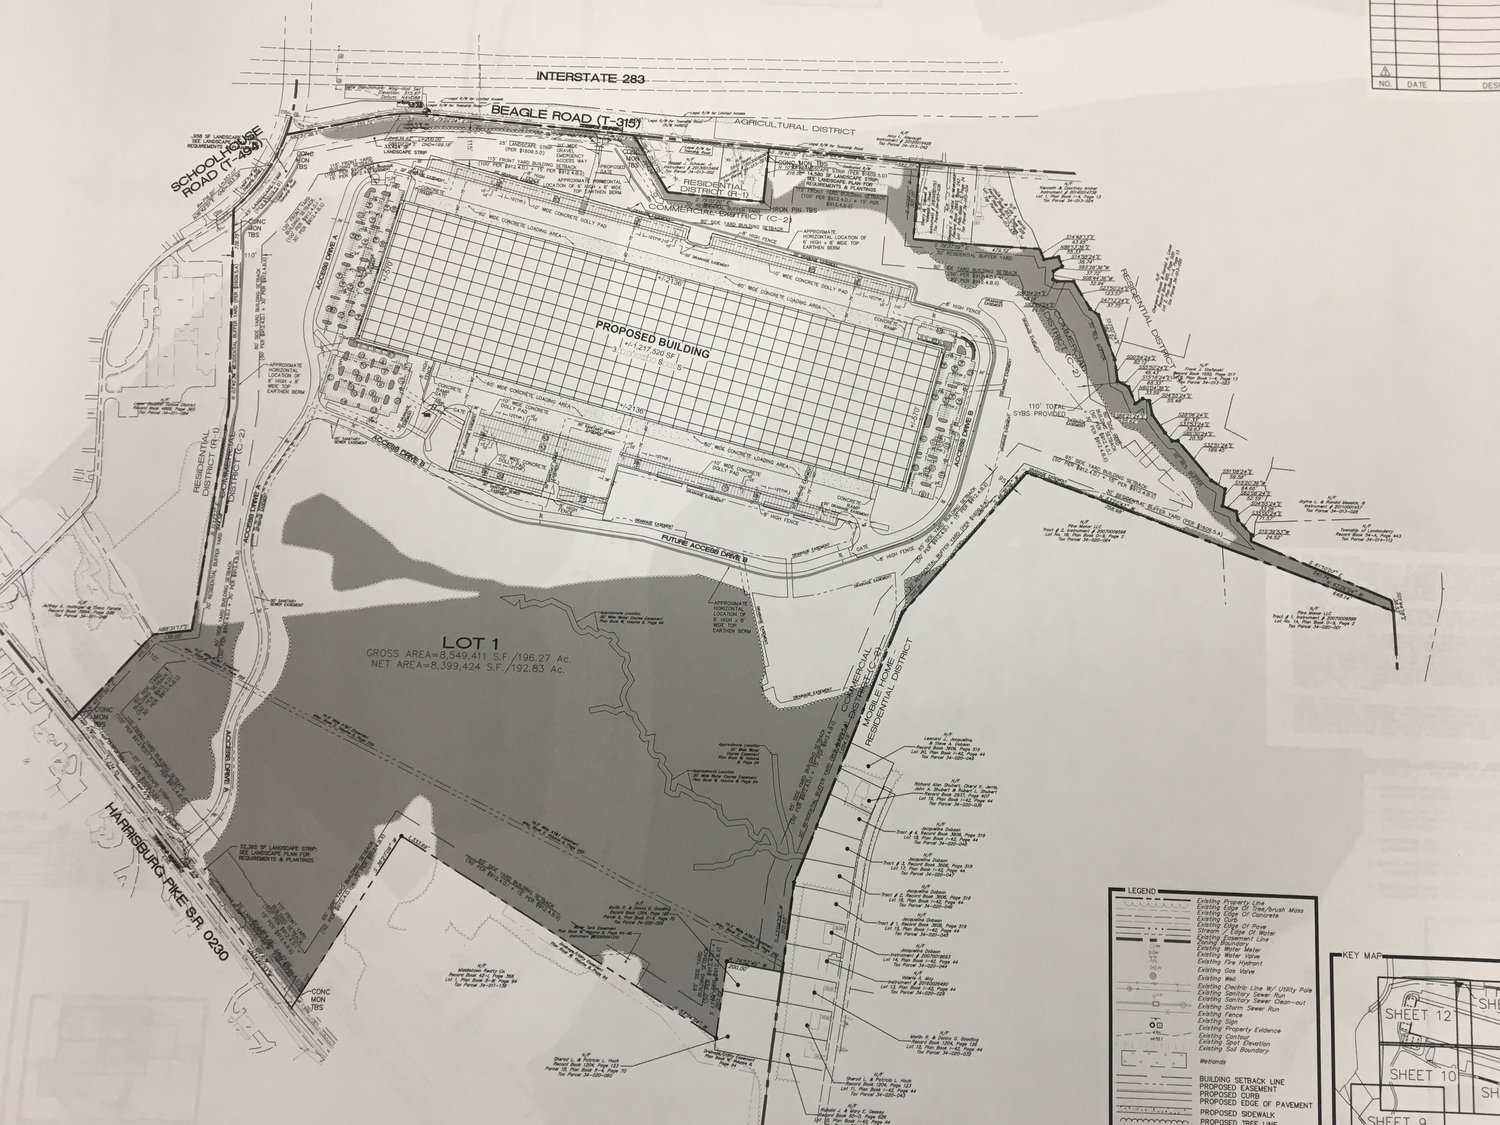 This image from the land development plan submitted by Core5 shows a proposed 1.2 million-square-foot warehouse on a 196-acre site behind Saturday's Market. Route 230 is in the southwest corner, and Beagle Road is to the north. The cut-out square at the bottom is Saturday's Market. The gray area indicates existing trees that will remain.